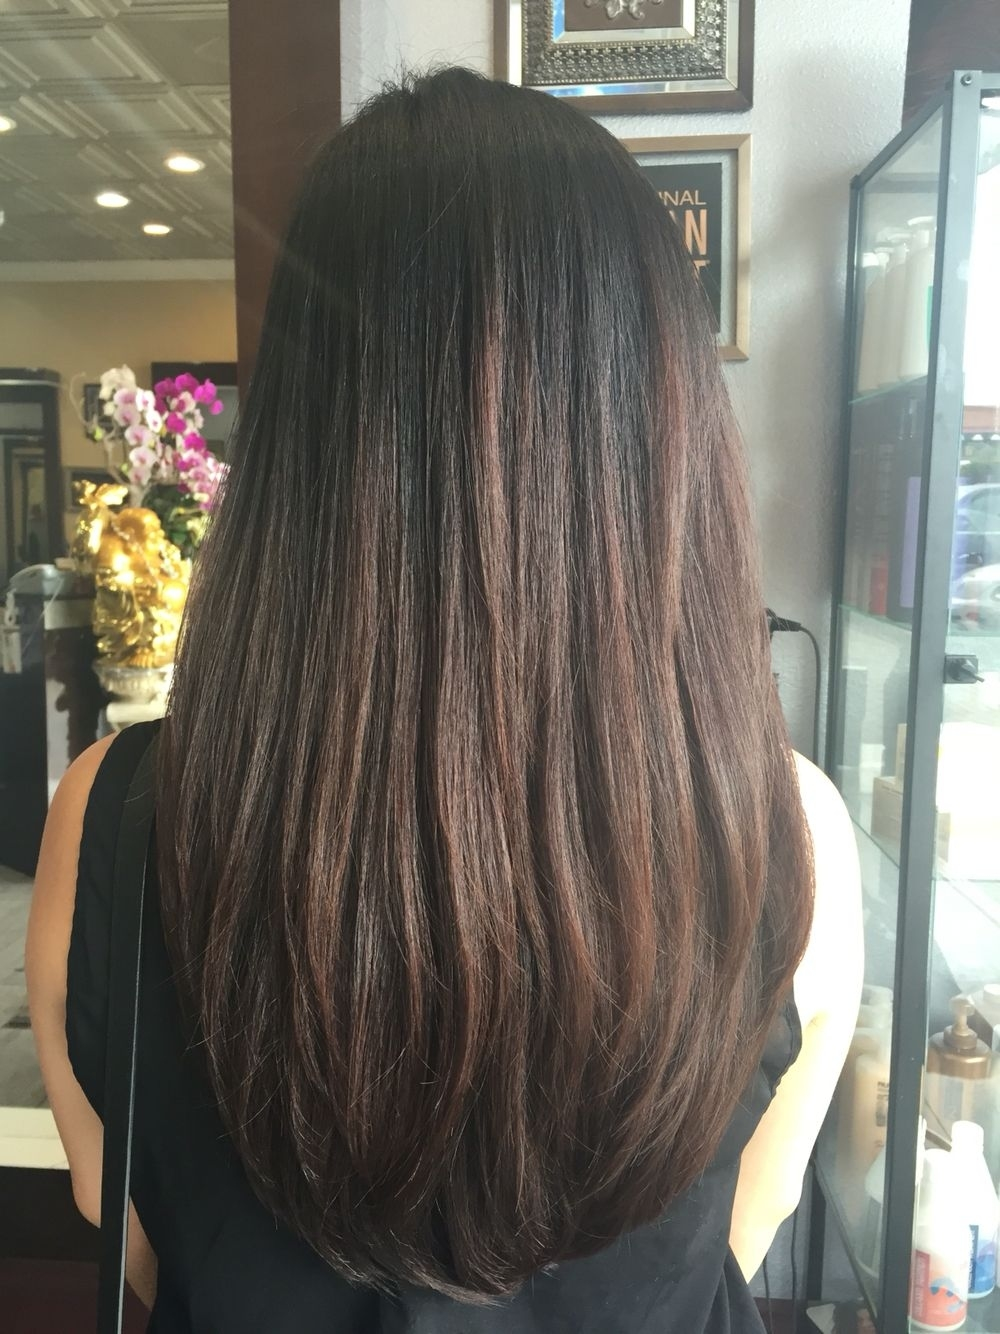 Long Layered Hair With U Shape My Stuff Pinterest | Hair Styles regarding U Shaped Haircut For Wavy Hair